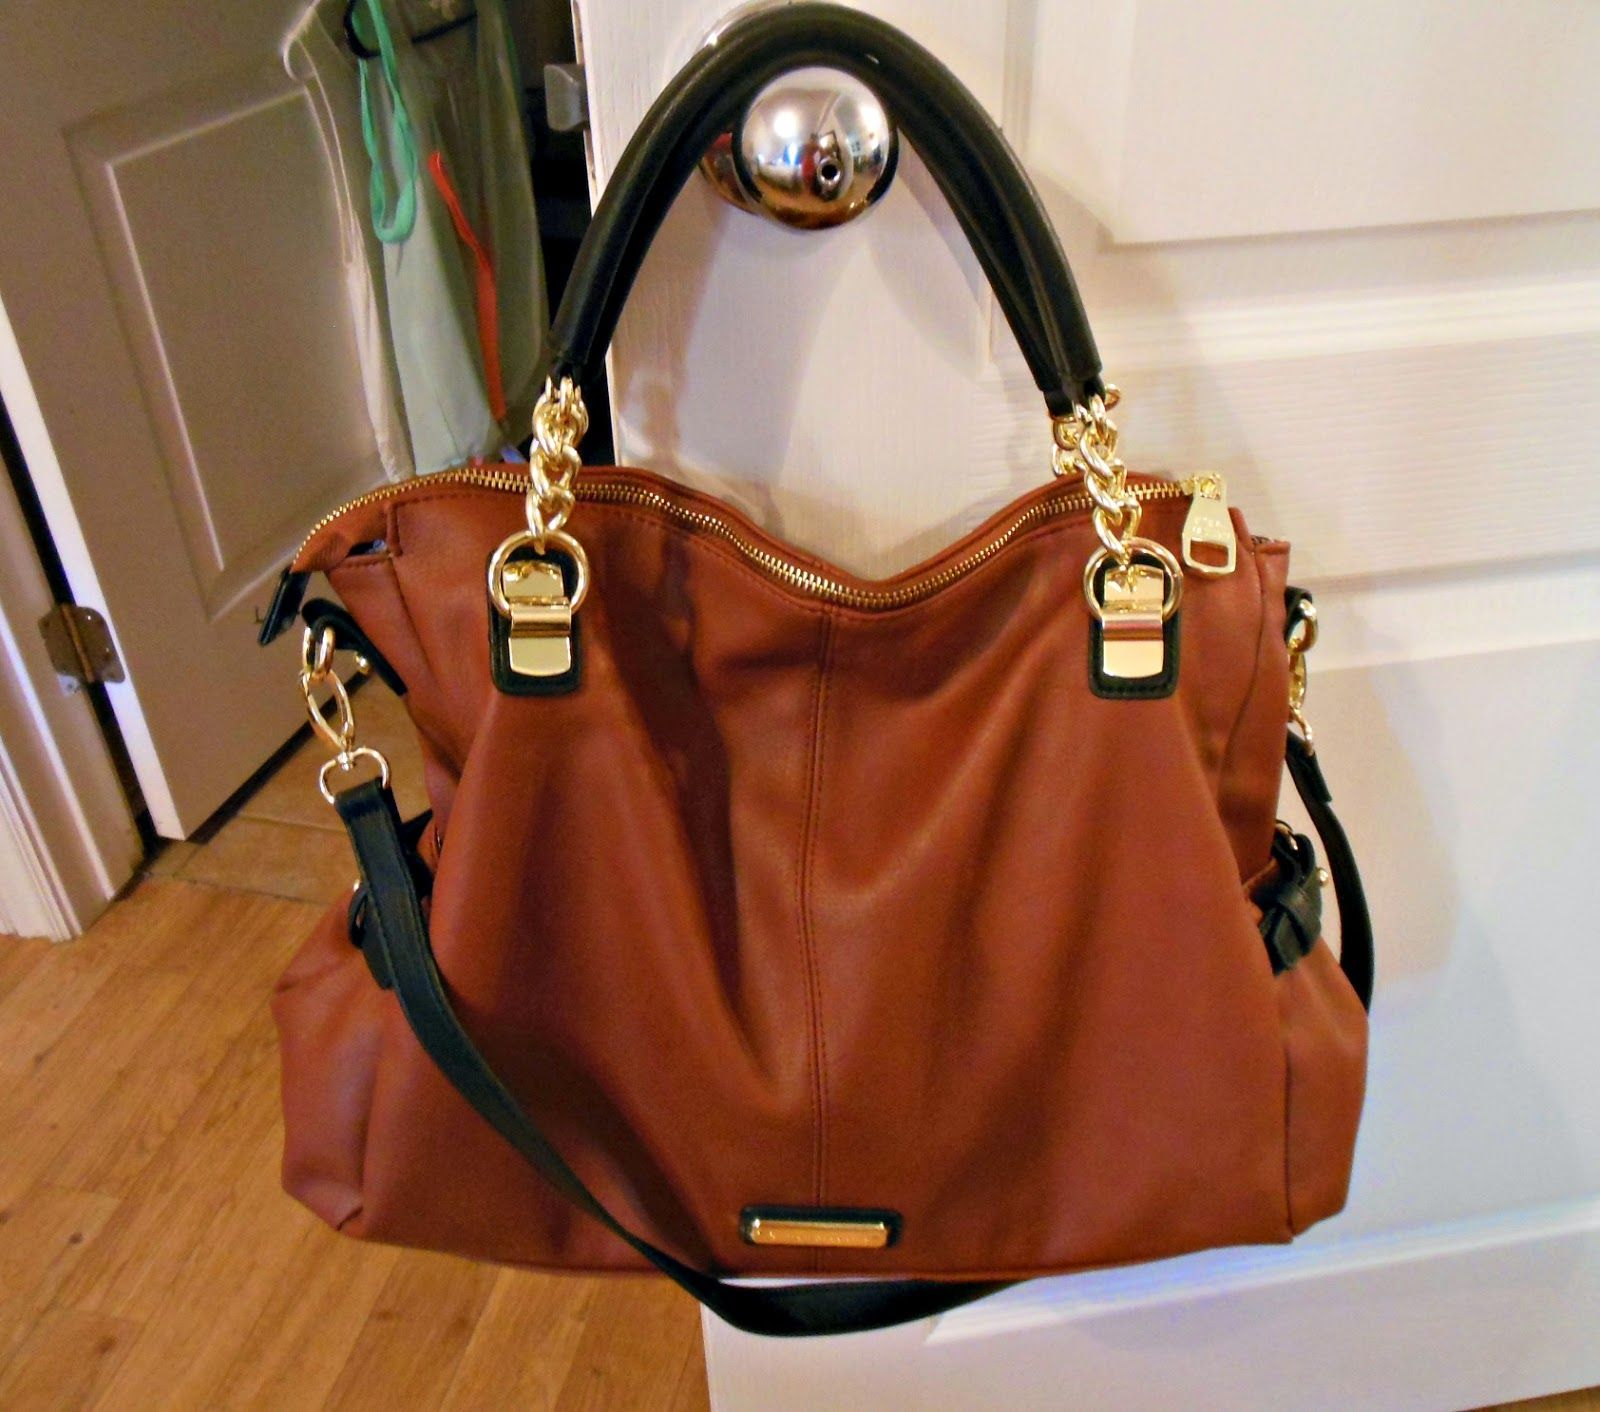 97e1920dce Steve Madden Purse! . Website  Ashleygabrielle.com